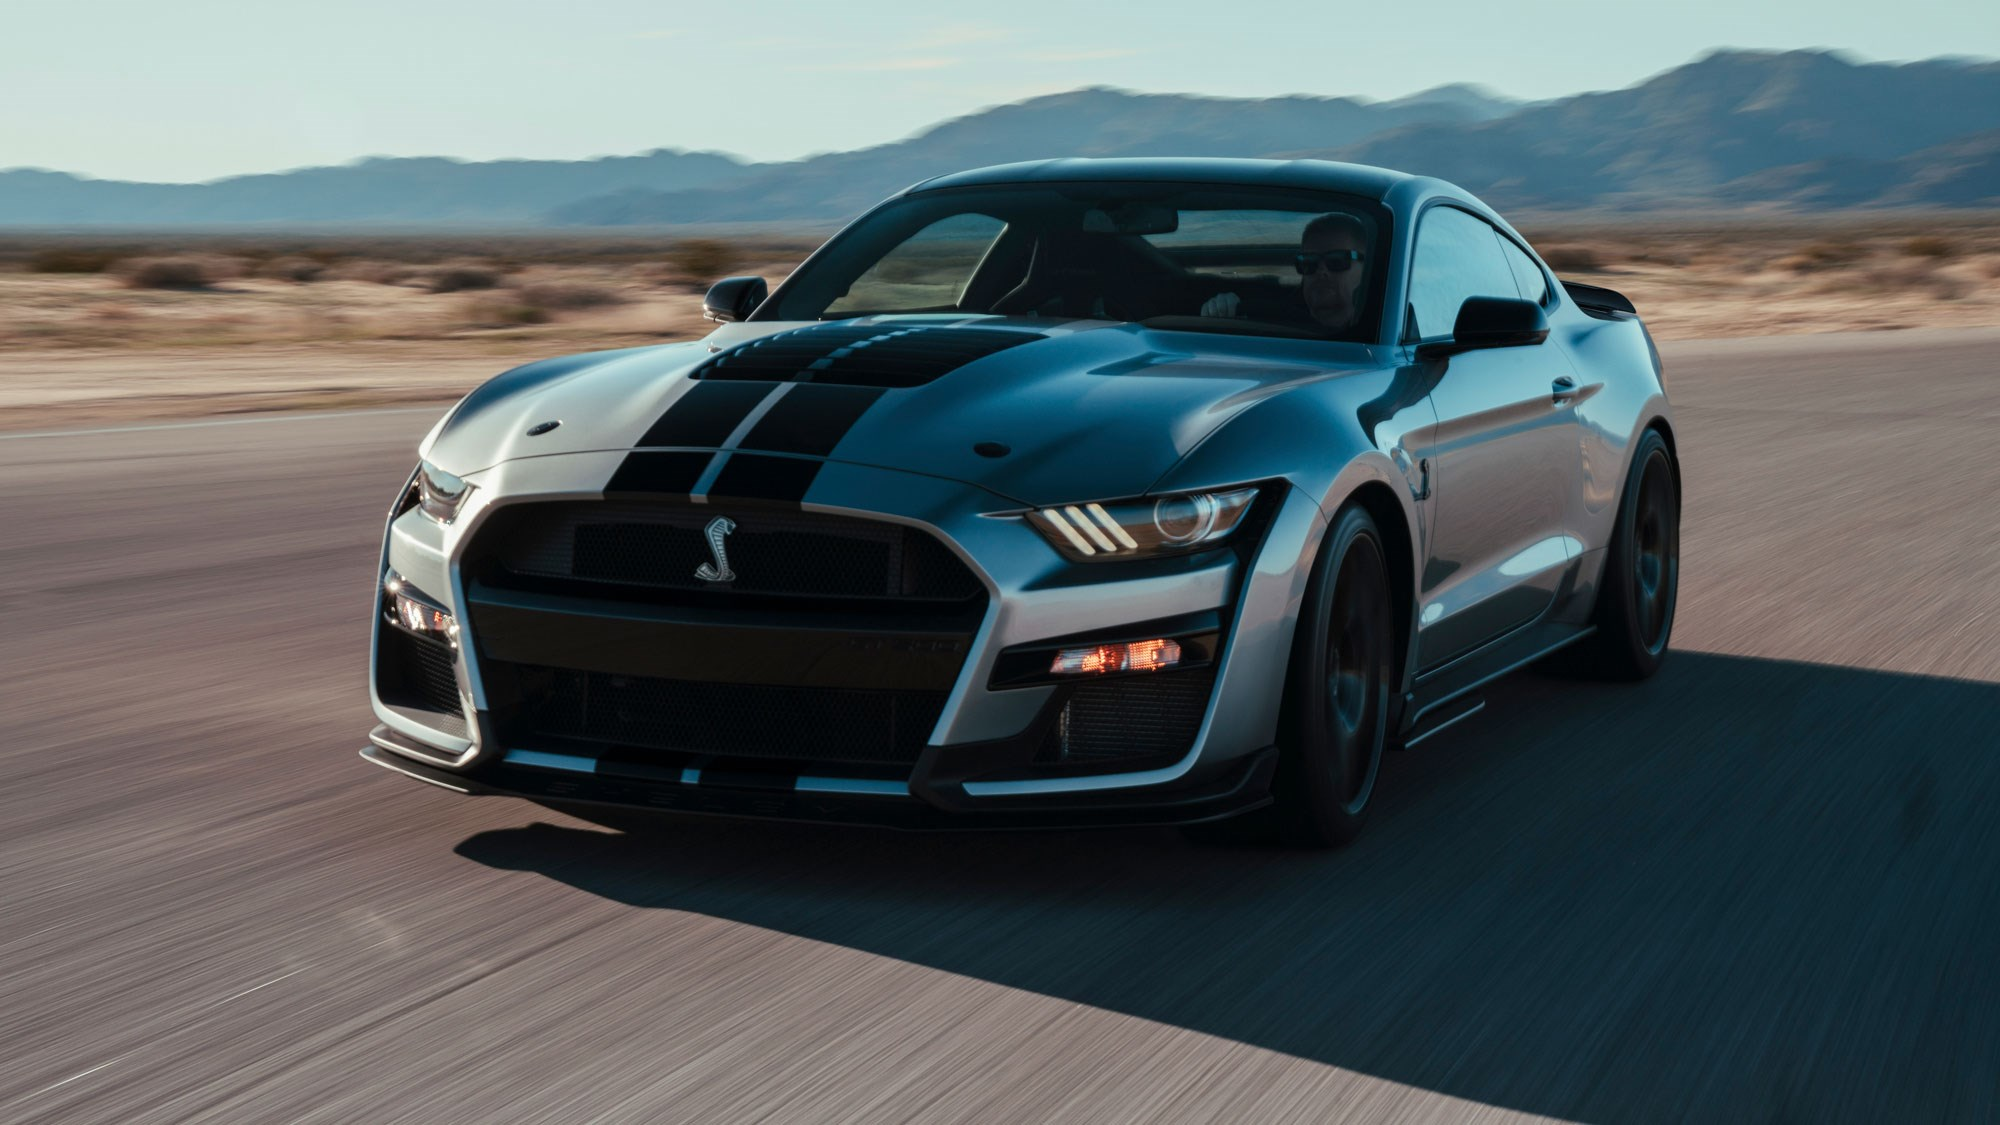 The 2020 shelby mustang gt500 gets supercar performance